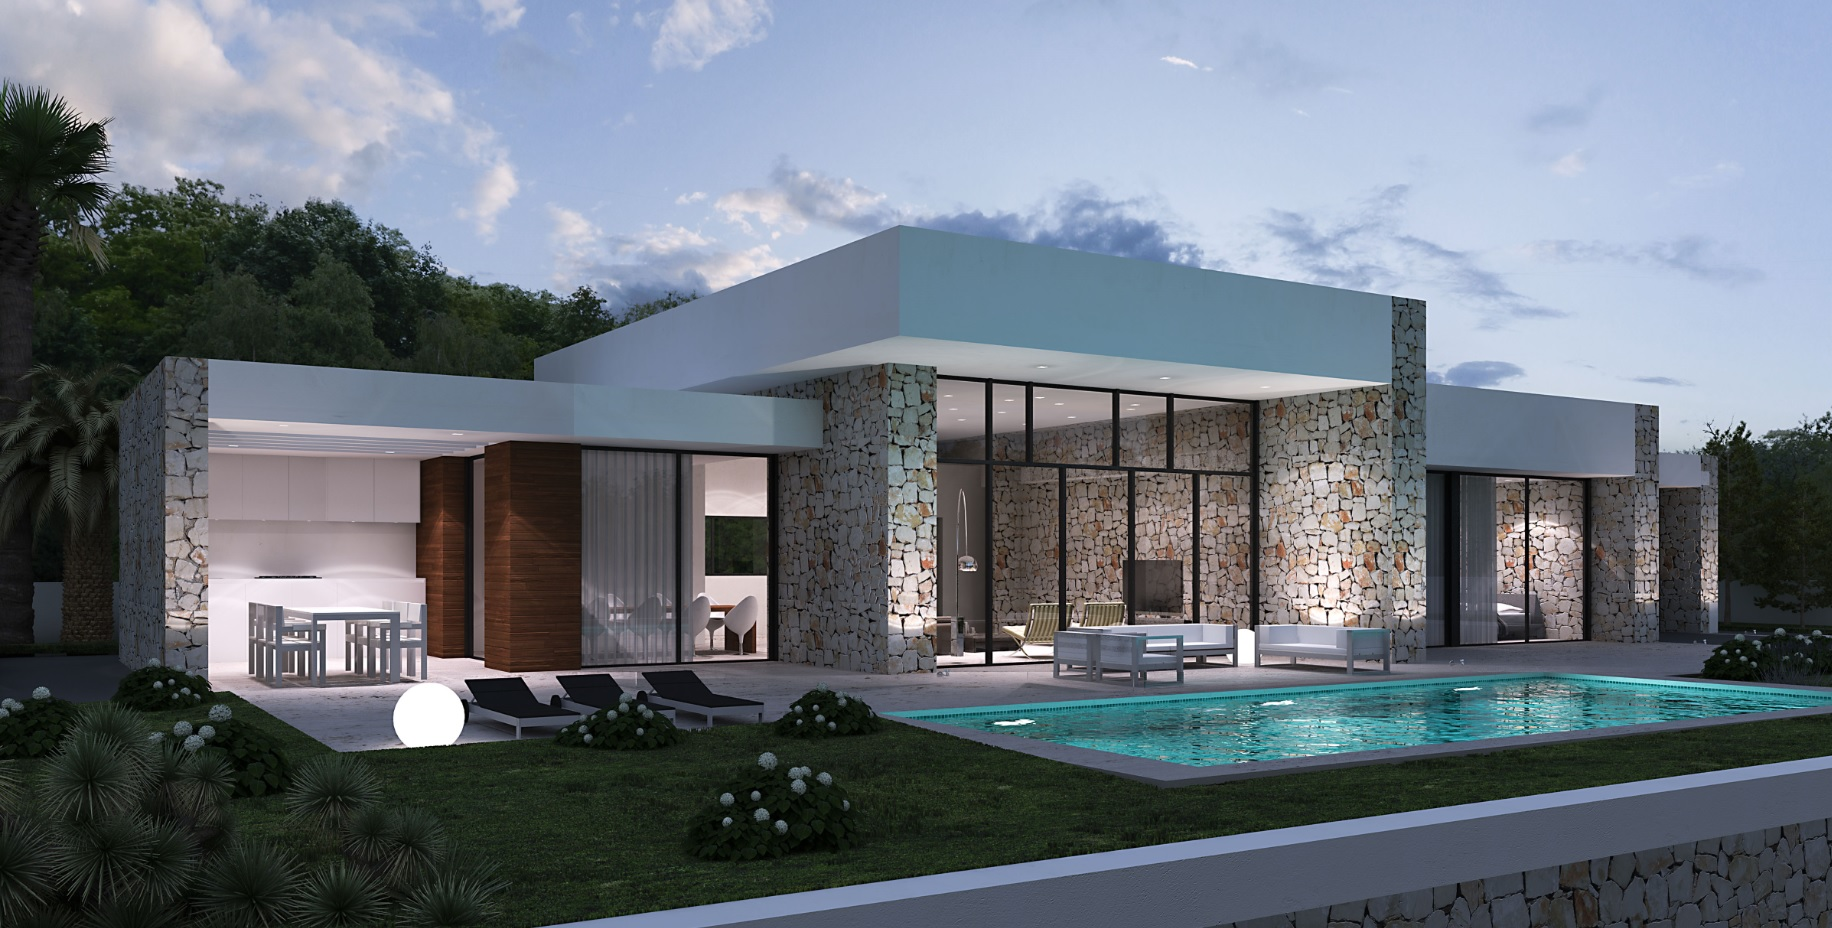 luxus villa cecile moderne spanische villa mit pool lifestyle homes ag. Black Bedroom Furniture Sets. Home Design Ideas